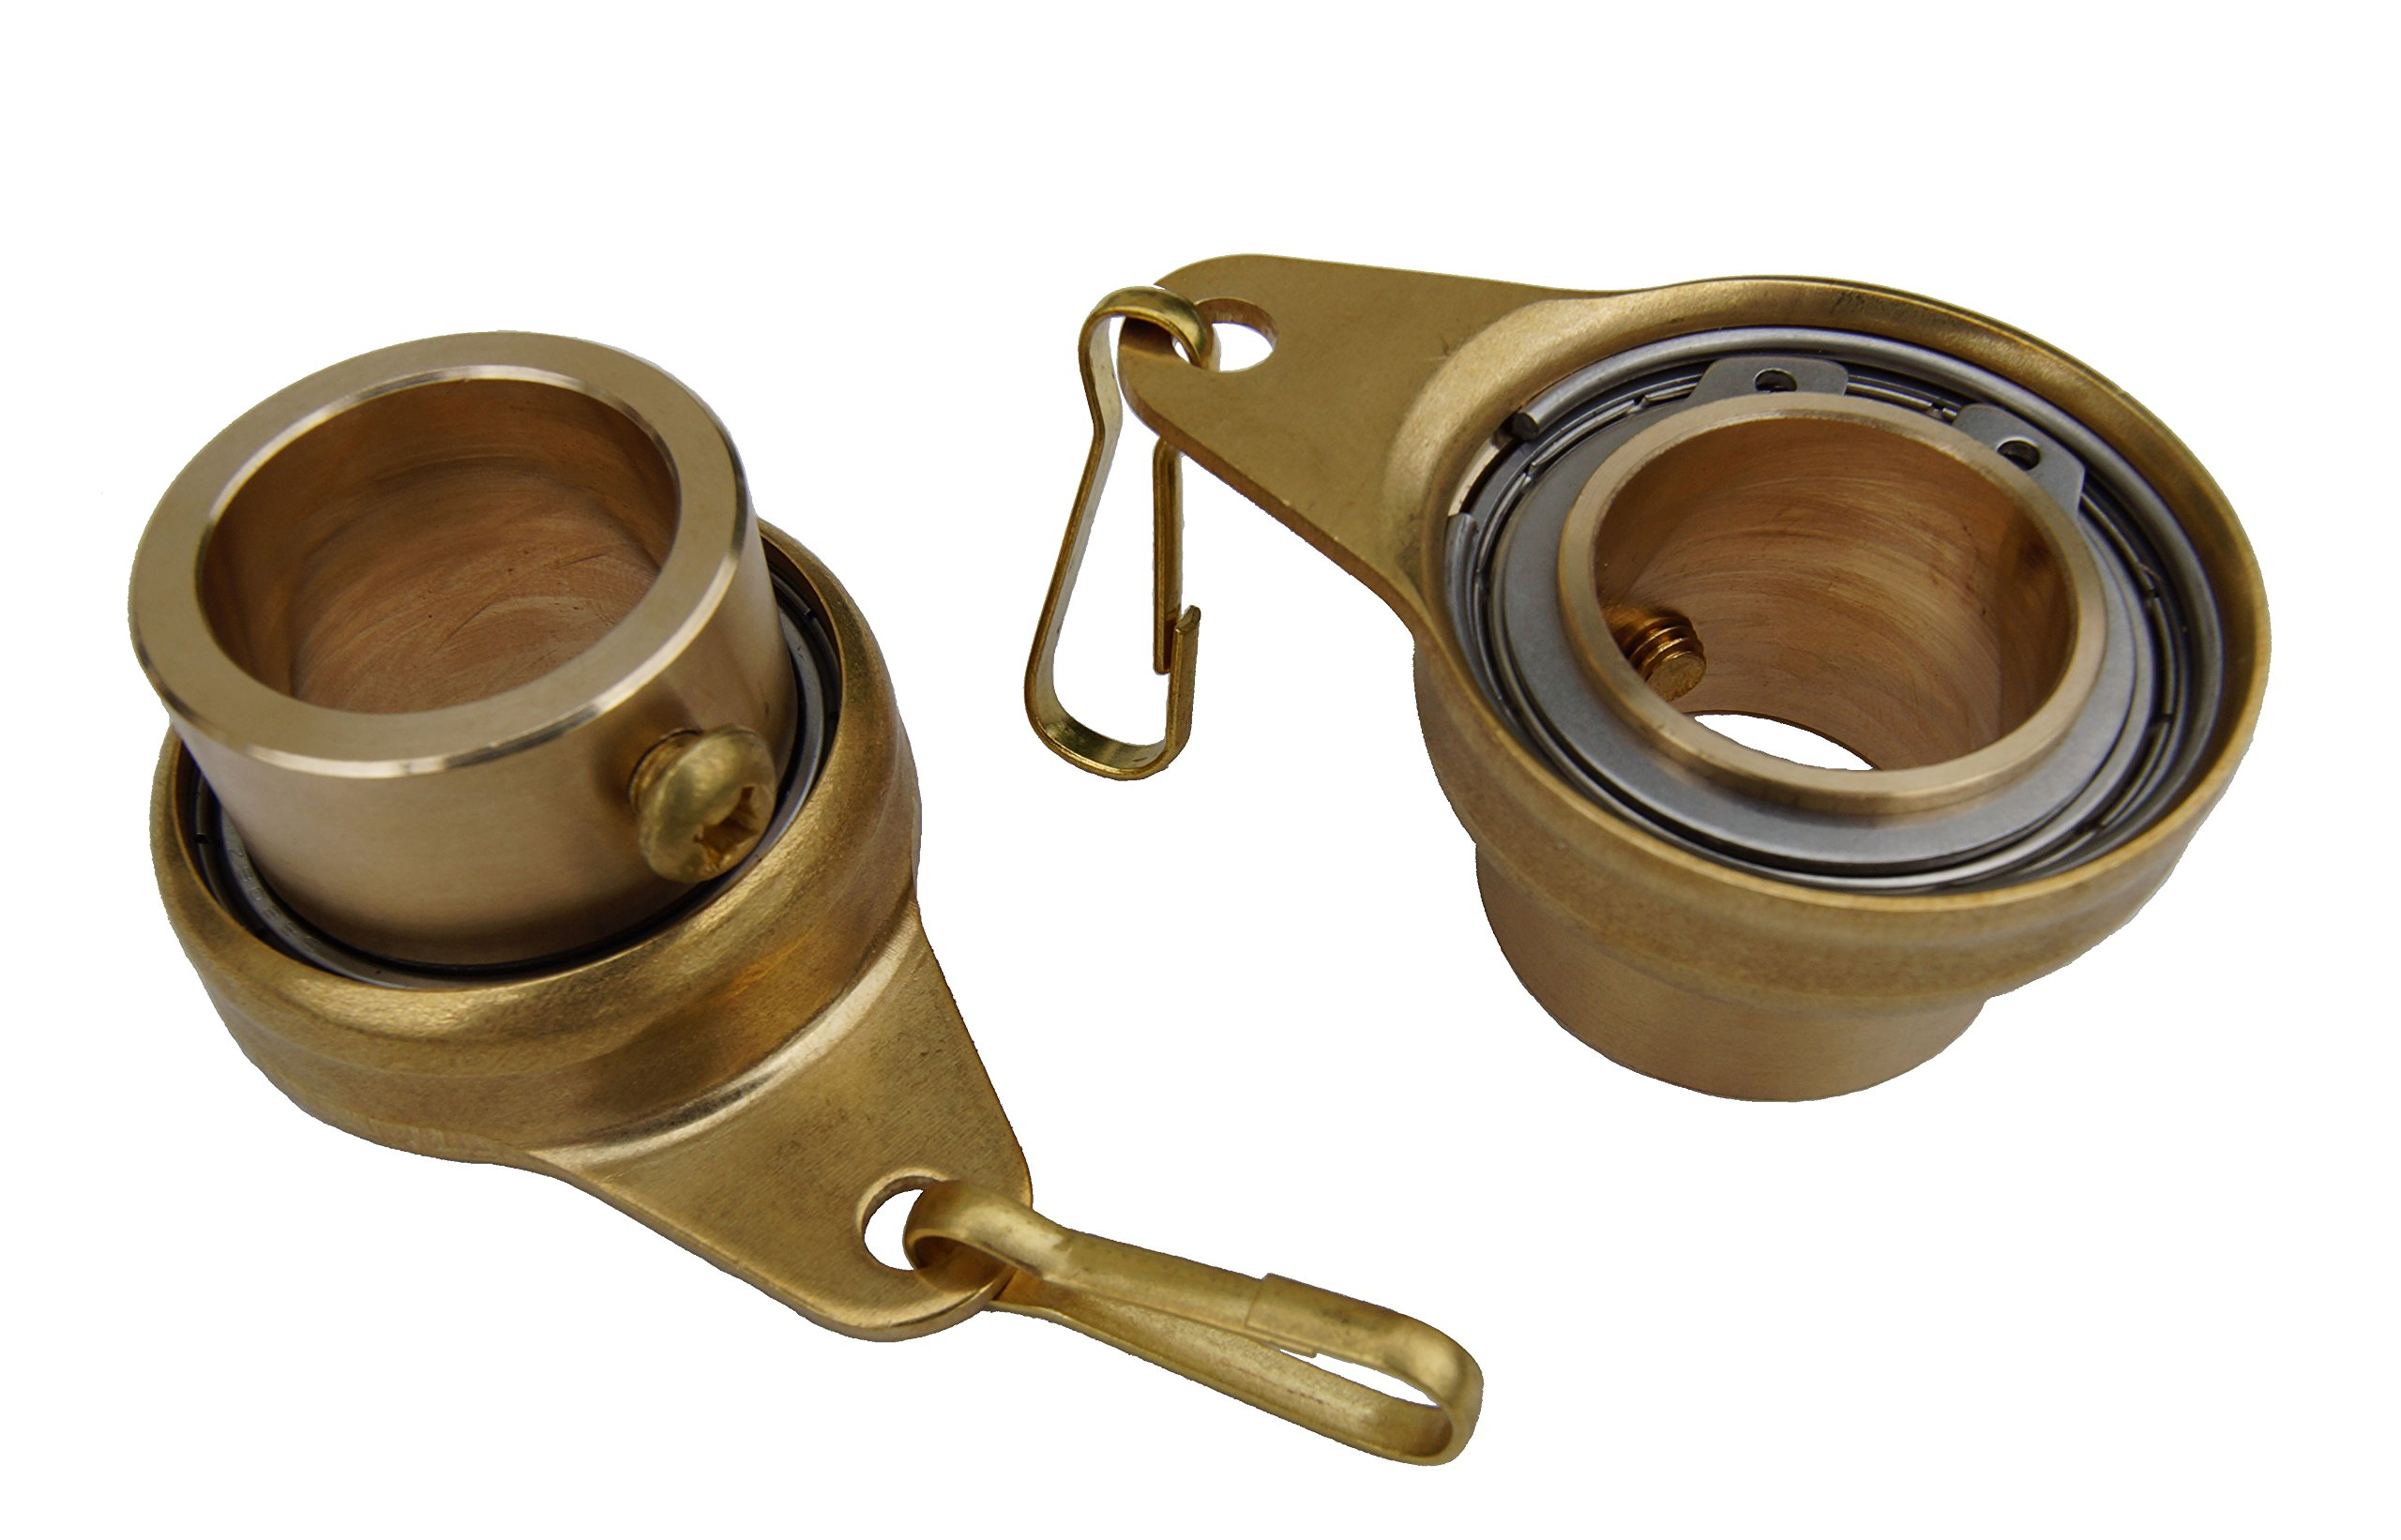 Stanwood Wind Sculpture Non Tangle Flagpole Swivel/Rotating Ring, Brass Spinner with Stainless Steel Bearing - 1'', Pack of 2, Imported